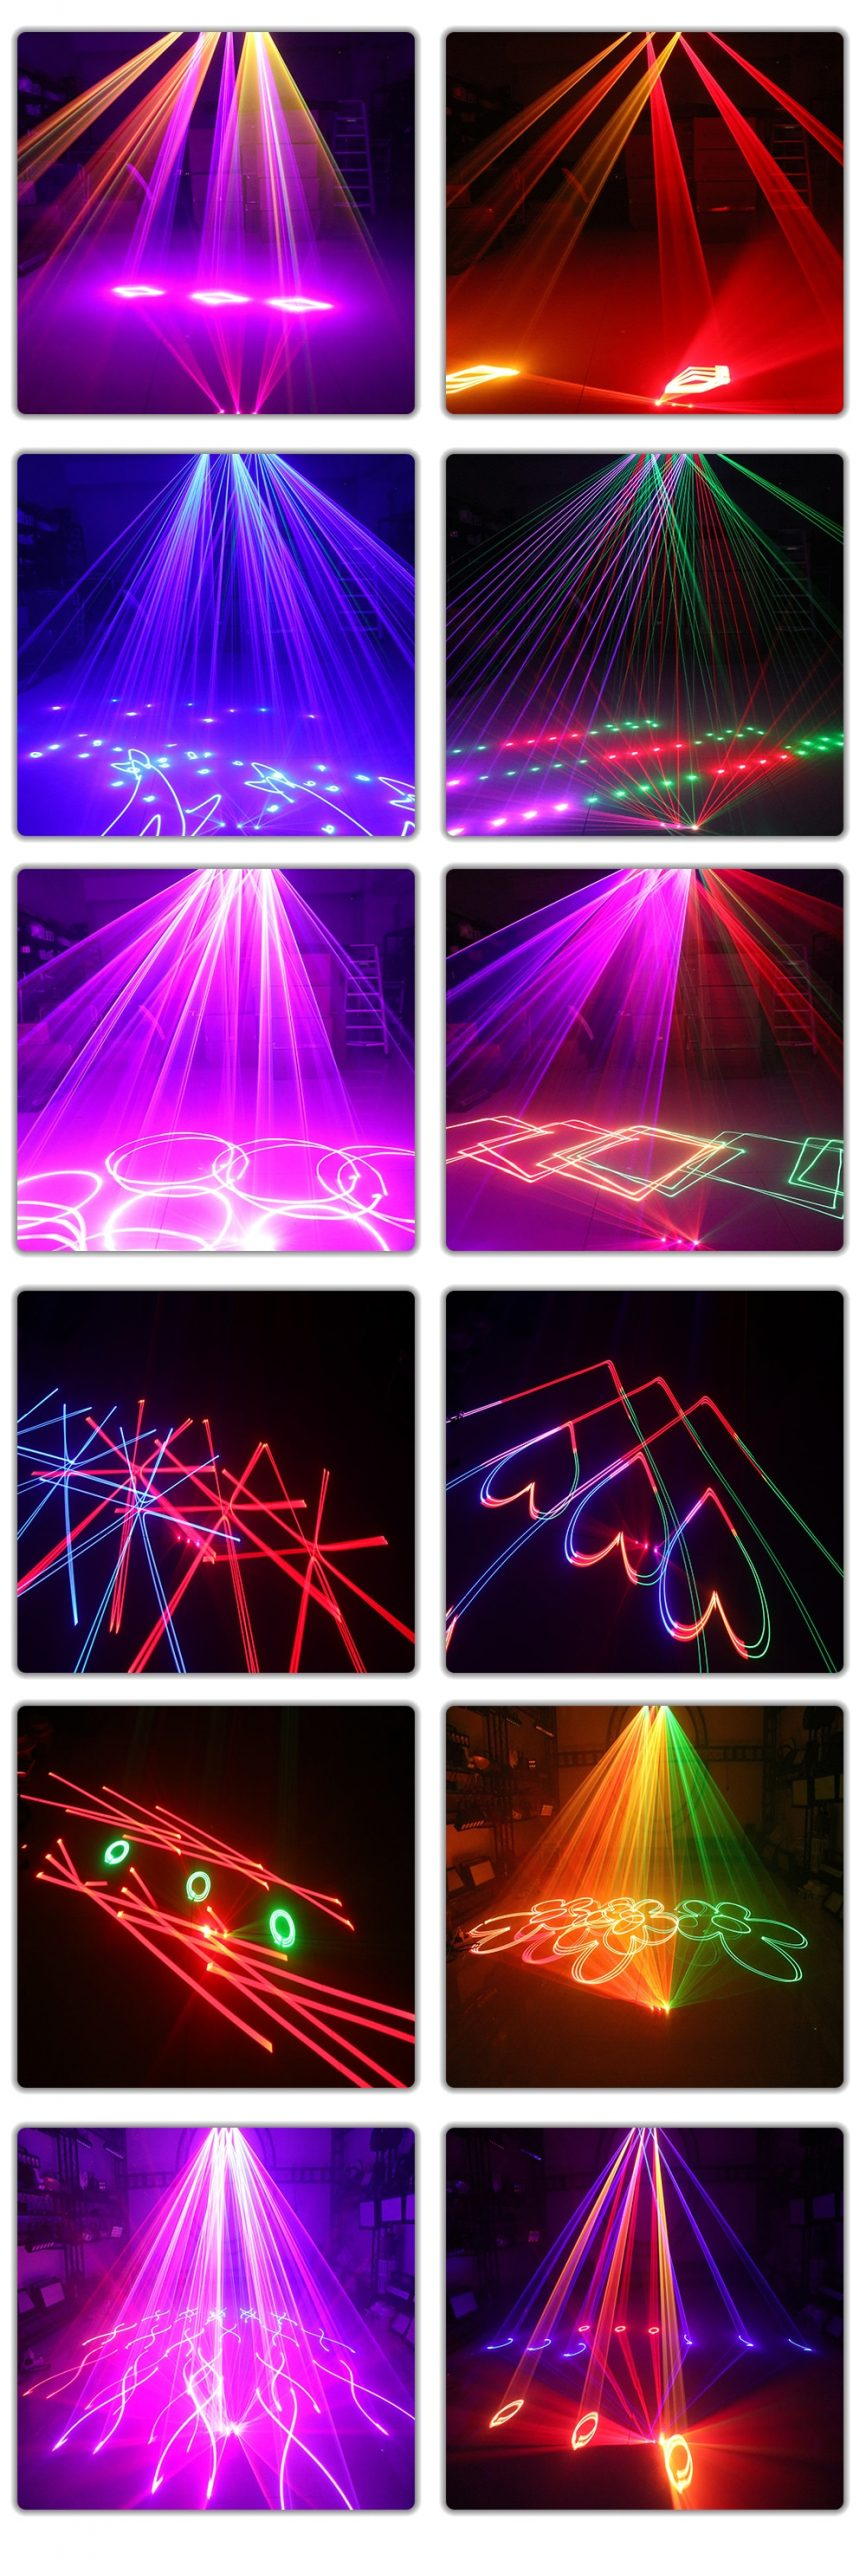 2021 RGB 3IN1 Animation Laser Light 256 Patterns And 11 laser Effect Stage Projector DMX512 For DJ Disco Dance Floor Party Bar